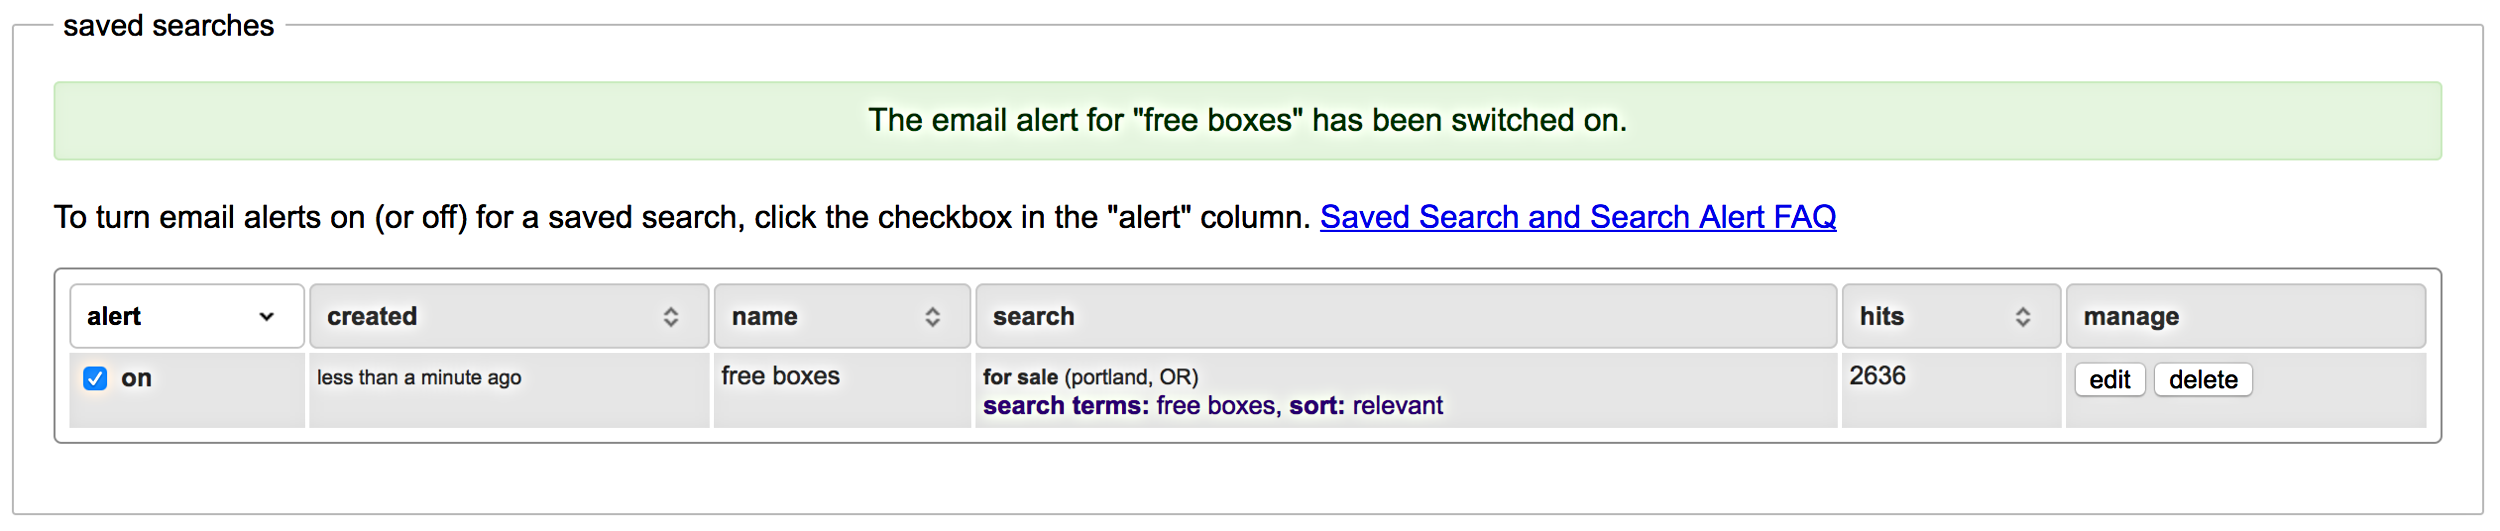 Note: Once you save the search, you will be able to save your preferences.